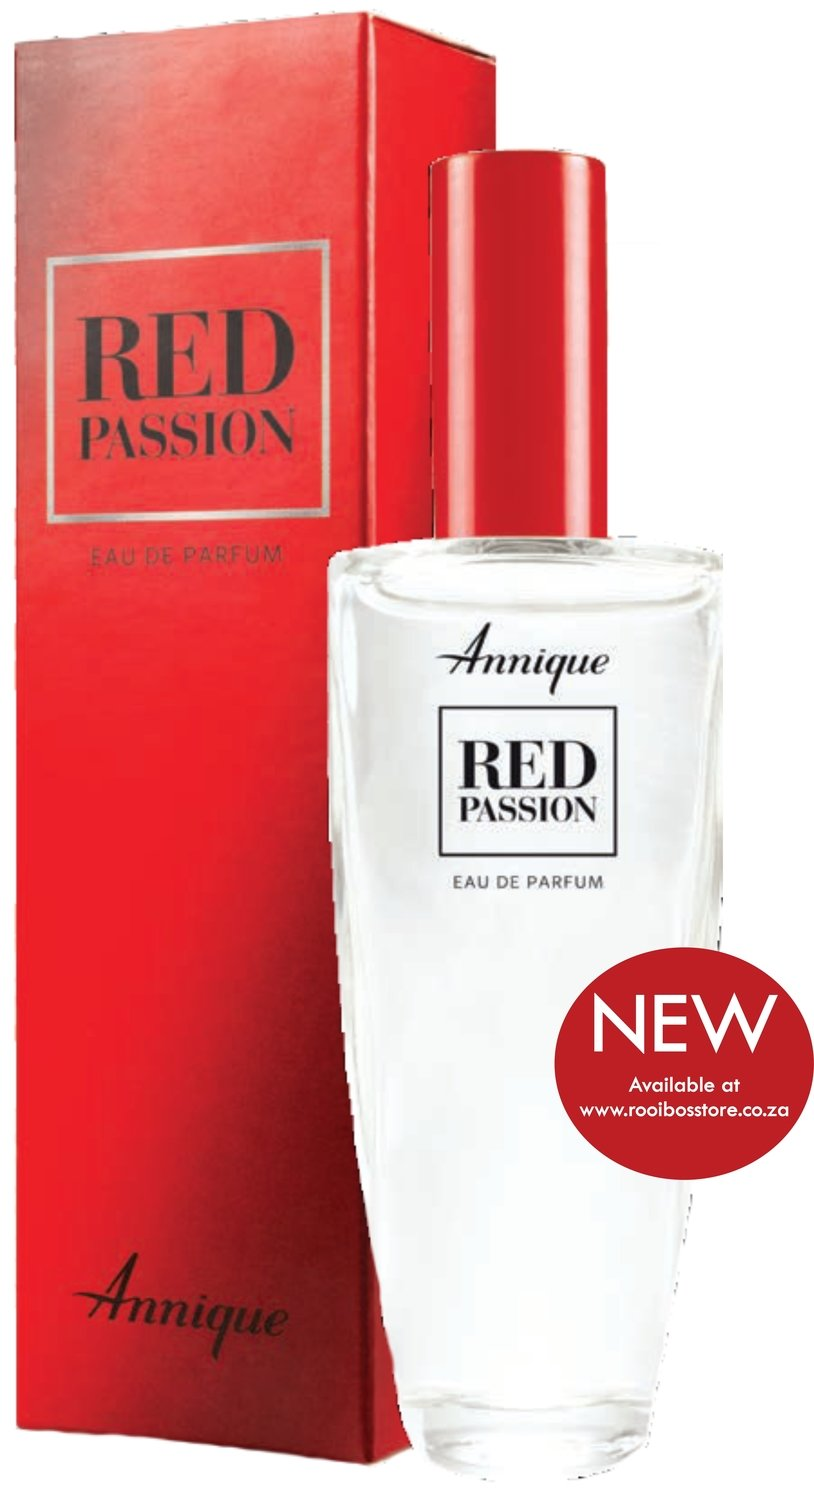 Annique Red Passion EDP 30ml Fragrance for HER